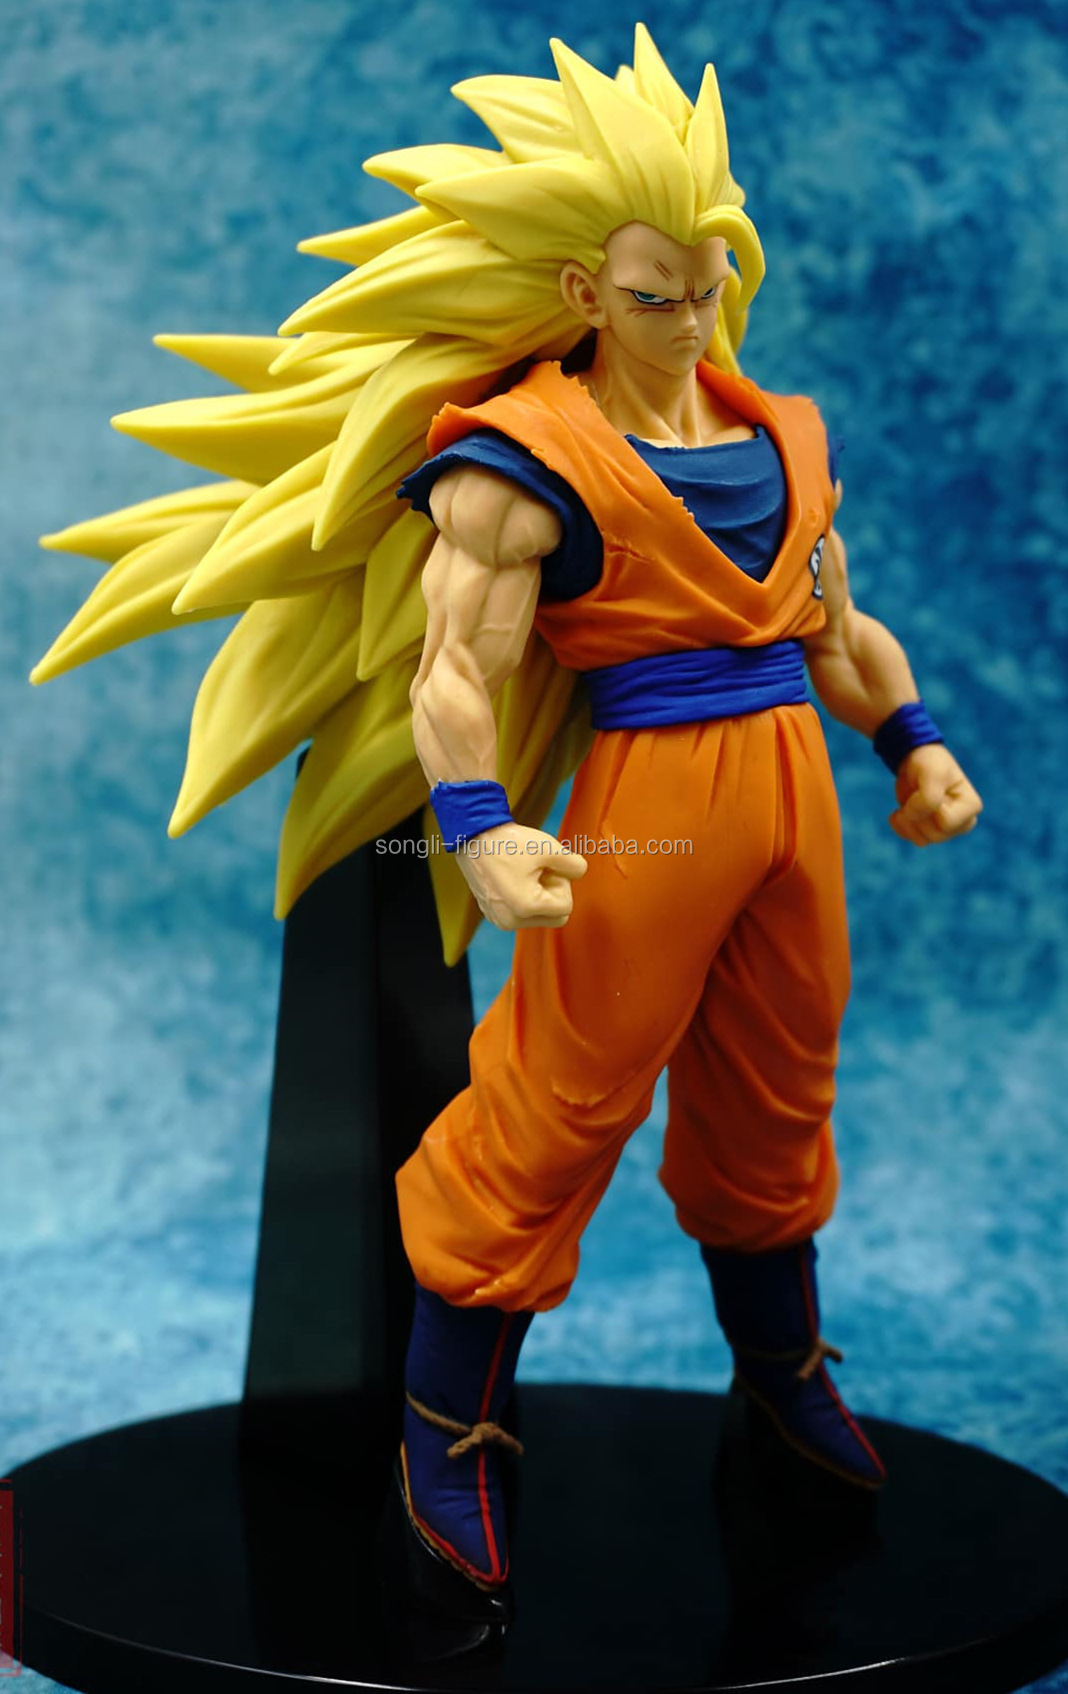 18 cm son goku action figure figurine dragon ball z son goku action figure